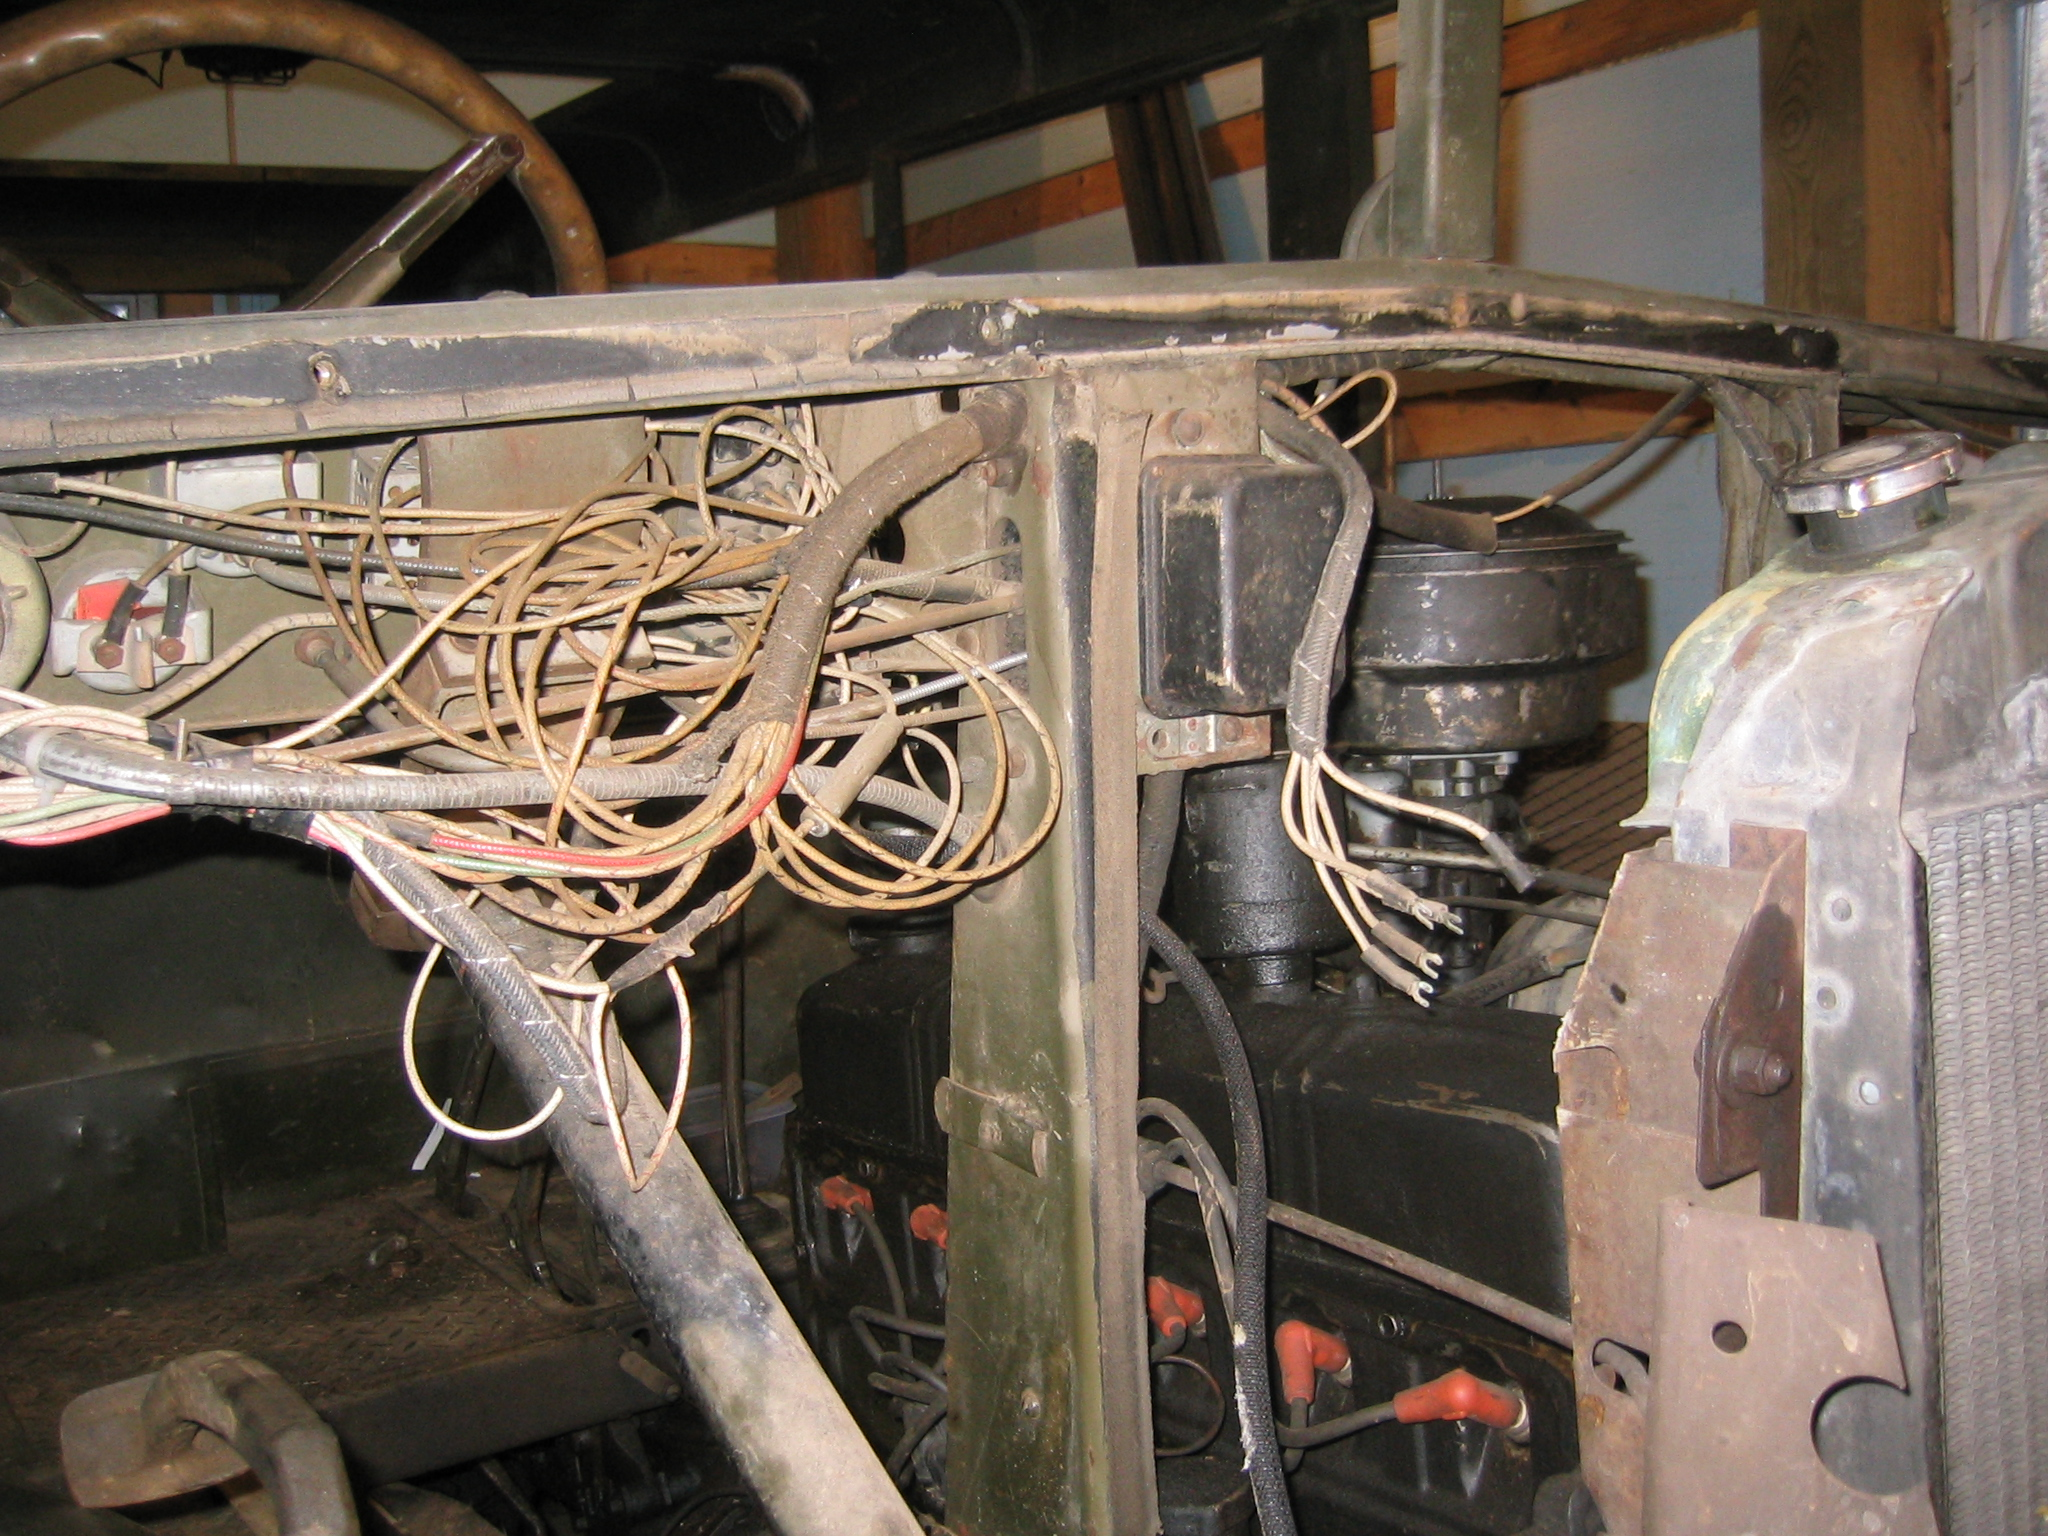 Cmp Wiring Information Harness Design Jobs In Canada The Reassembly Process After 2011 2012 Overhaul Reusing Earlier Made Was Relatively Straight Forward As I Not Having Add Or Replace